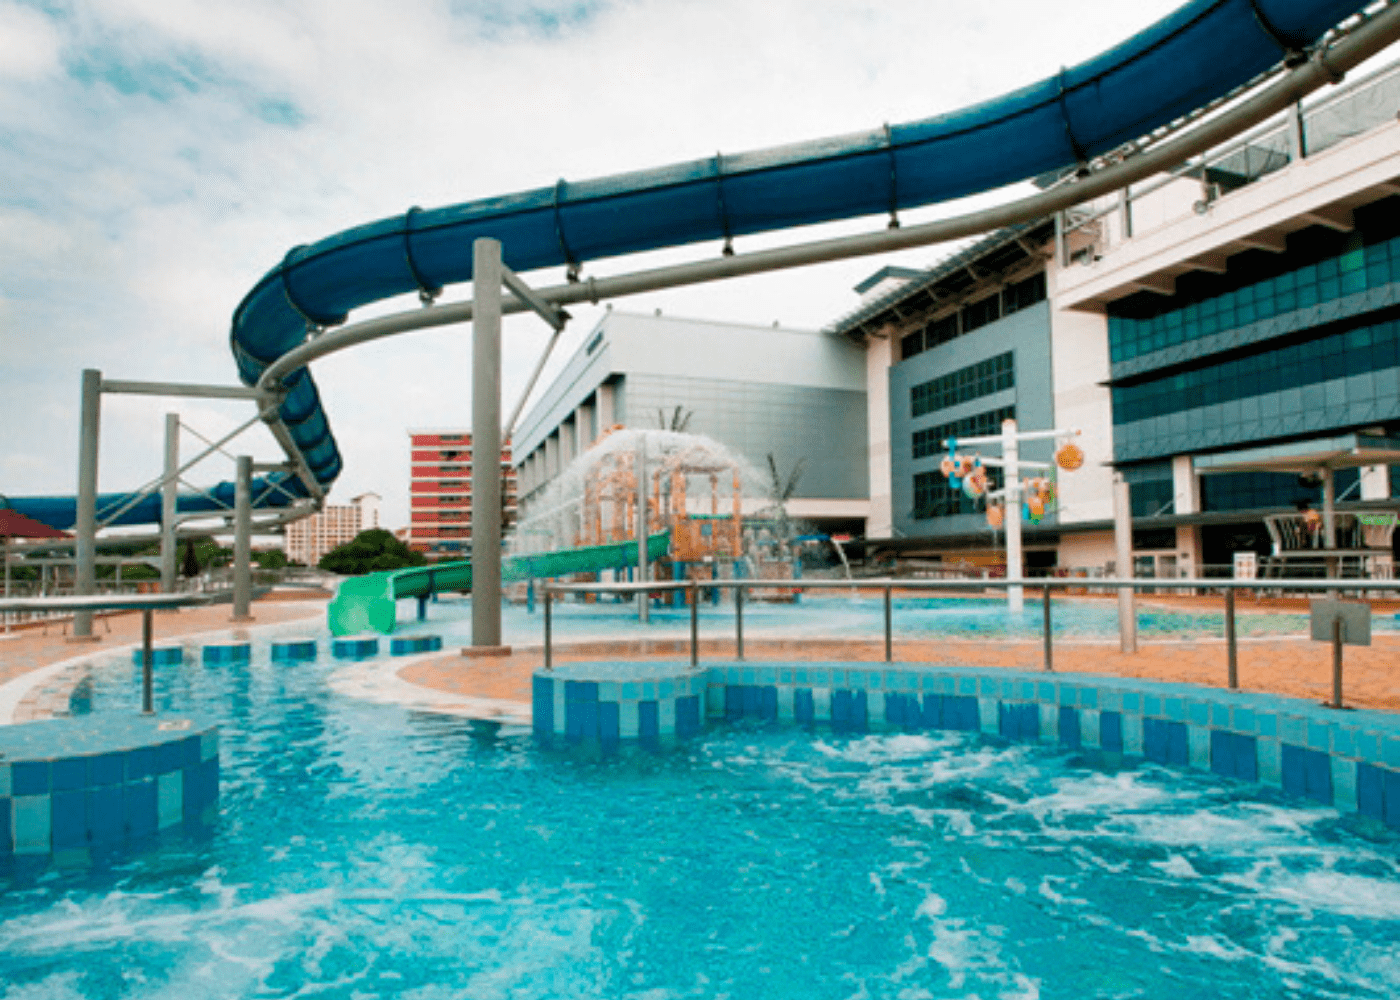 Jurong West Swimming Complex | Best public swimming pools in Singapore